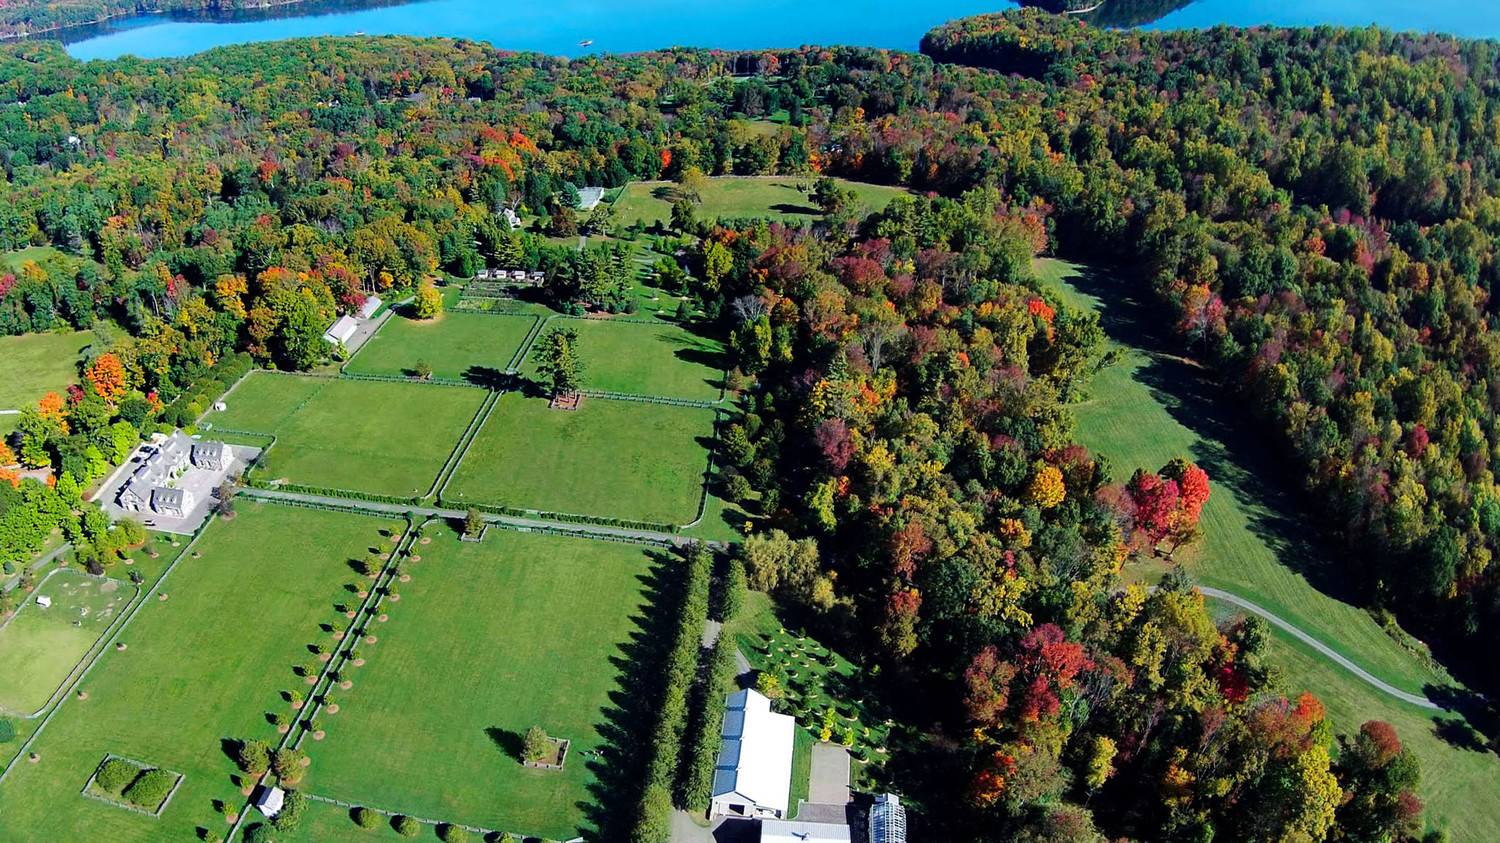 drone shot of marthas home in fall with changing leaves